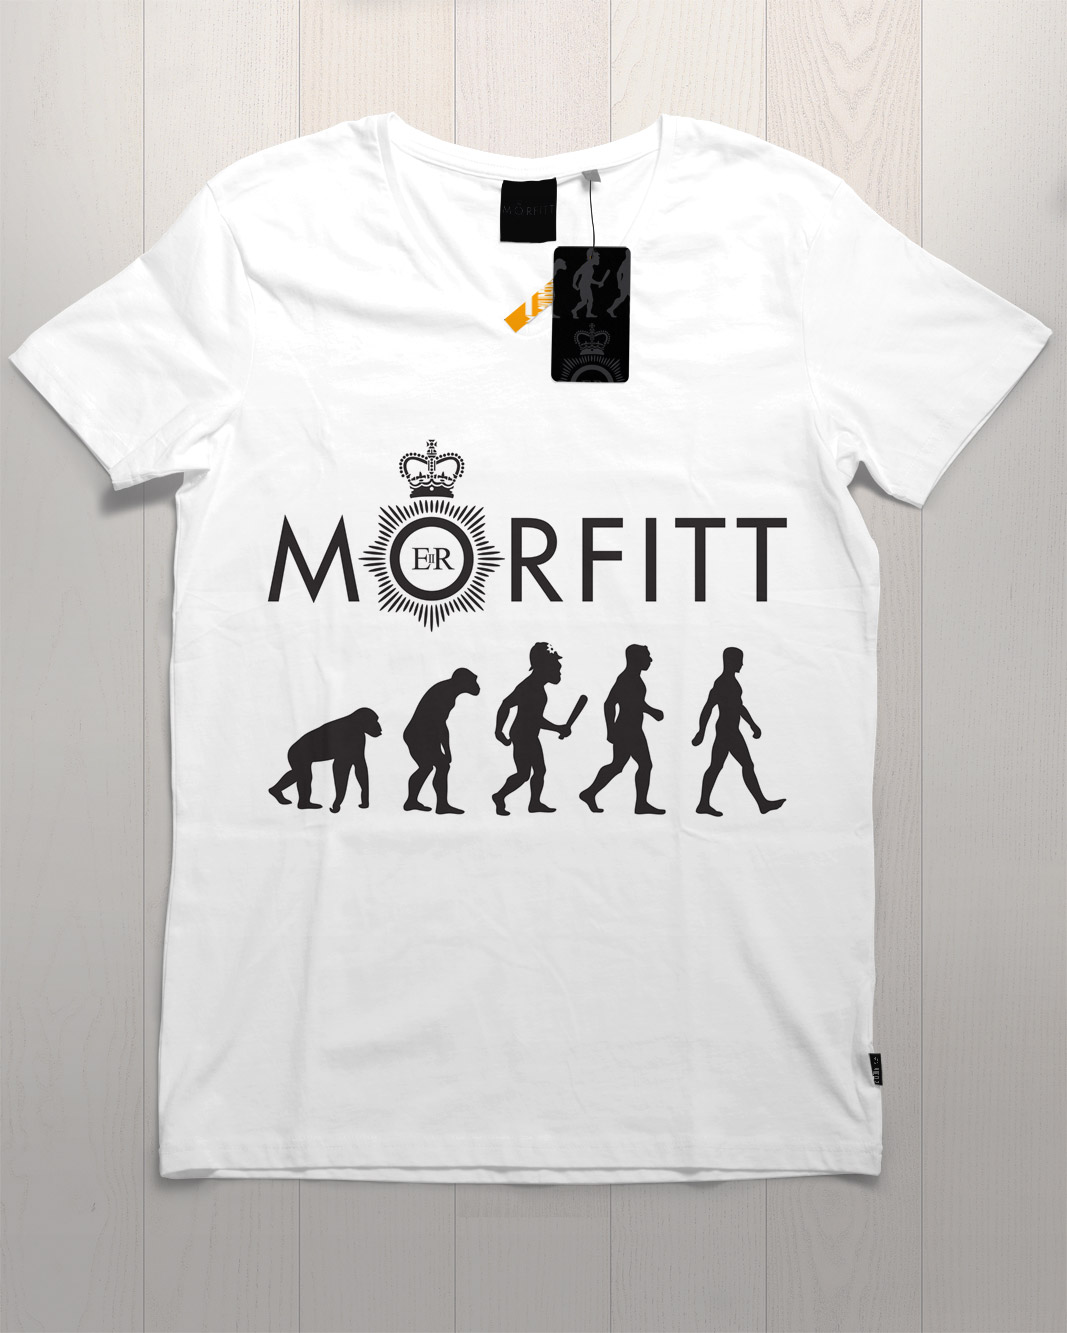 Morfitt T-Shirt Mock Up